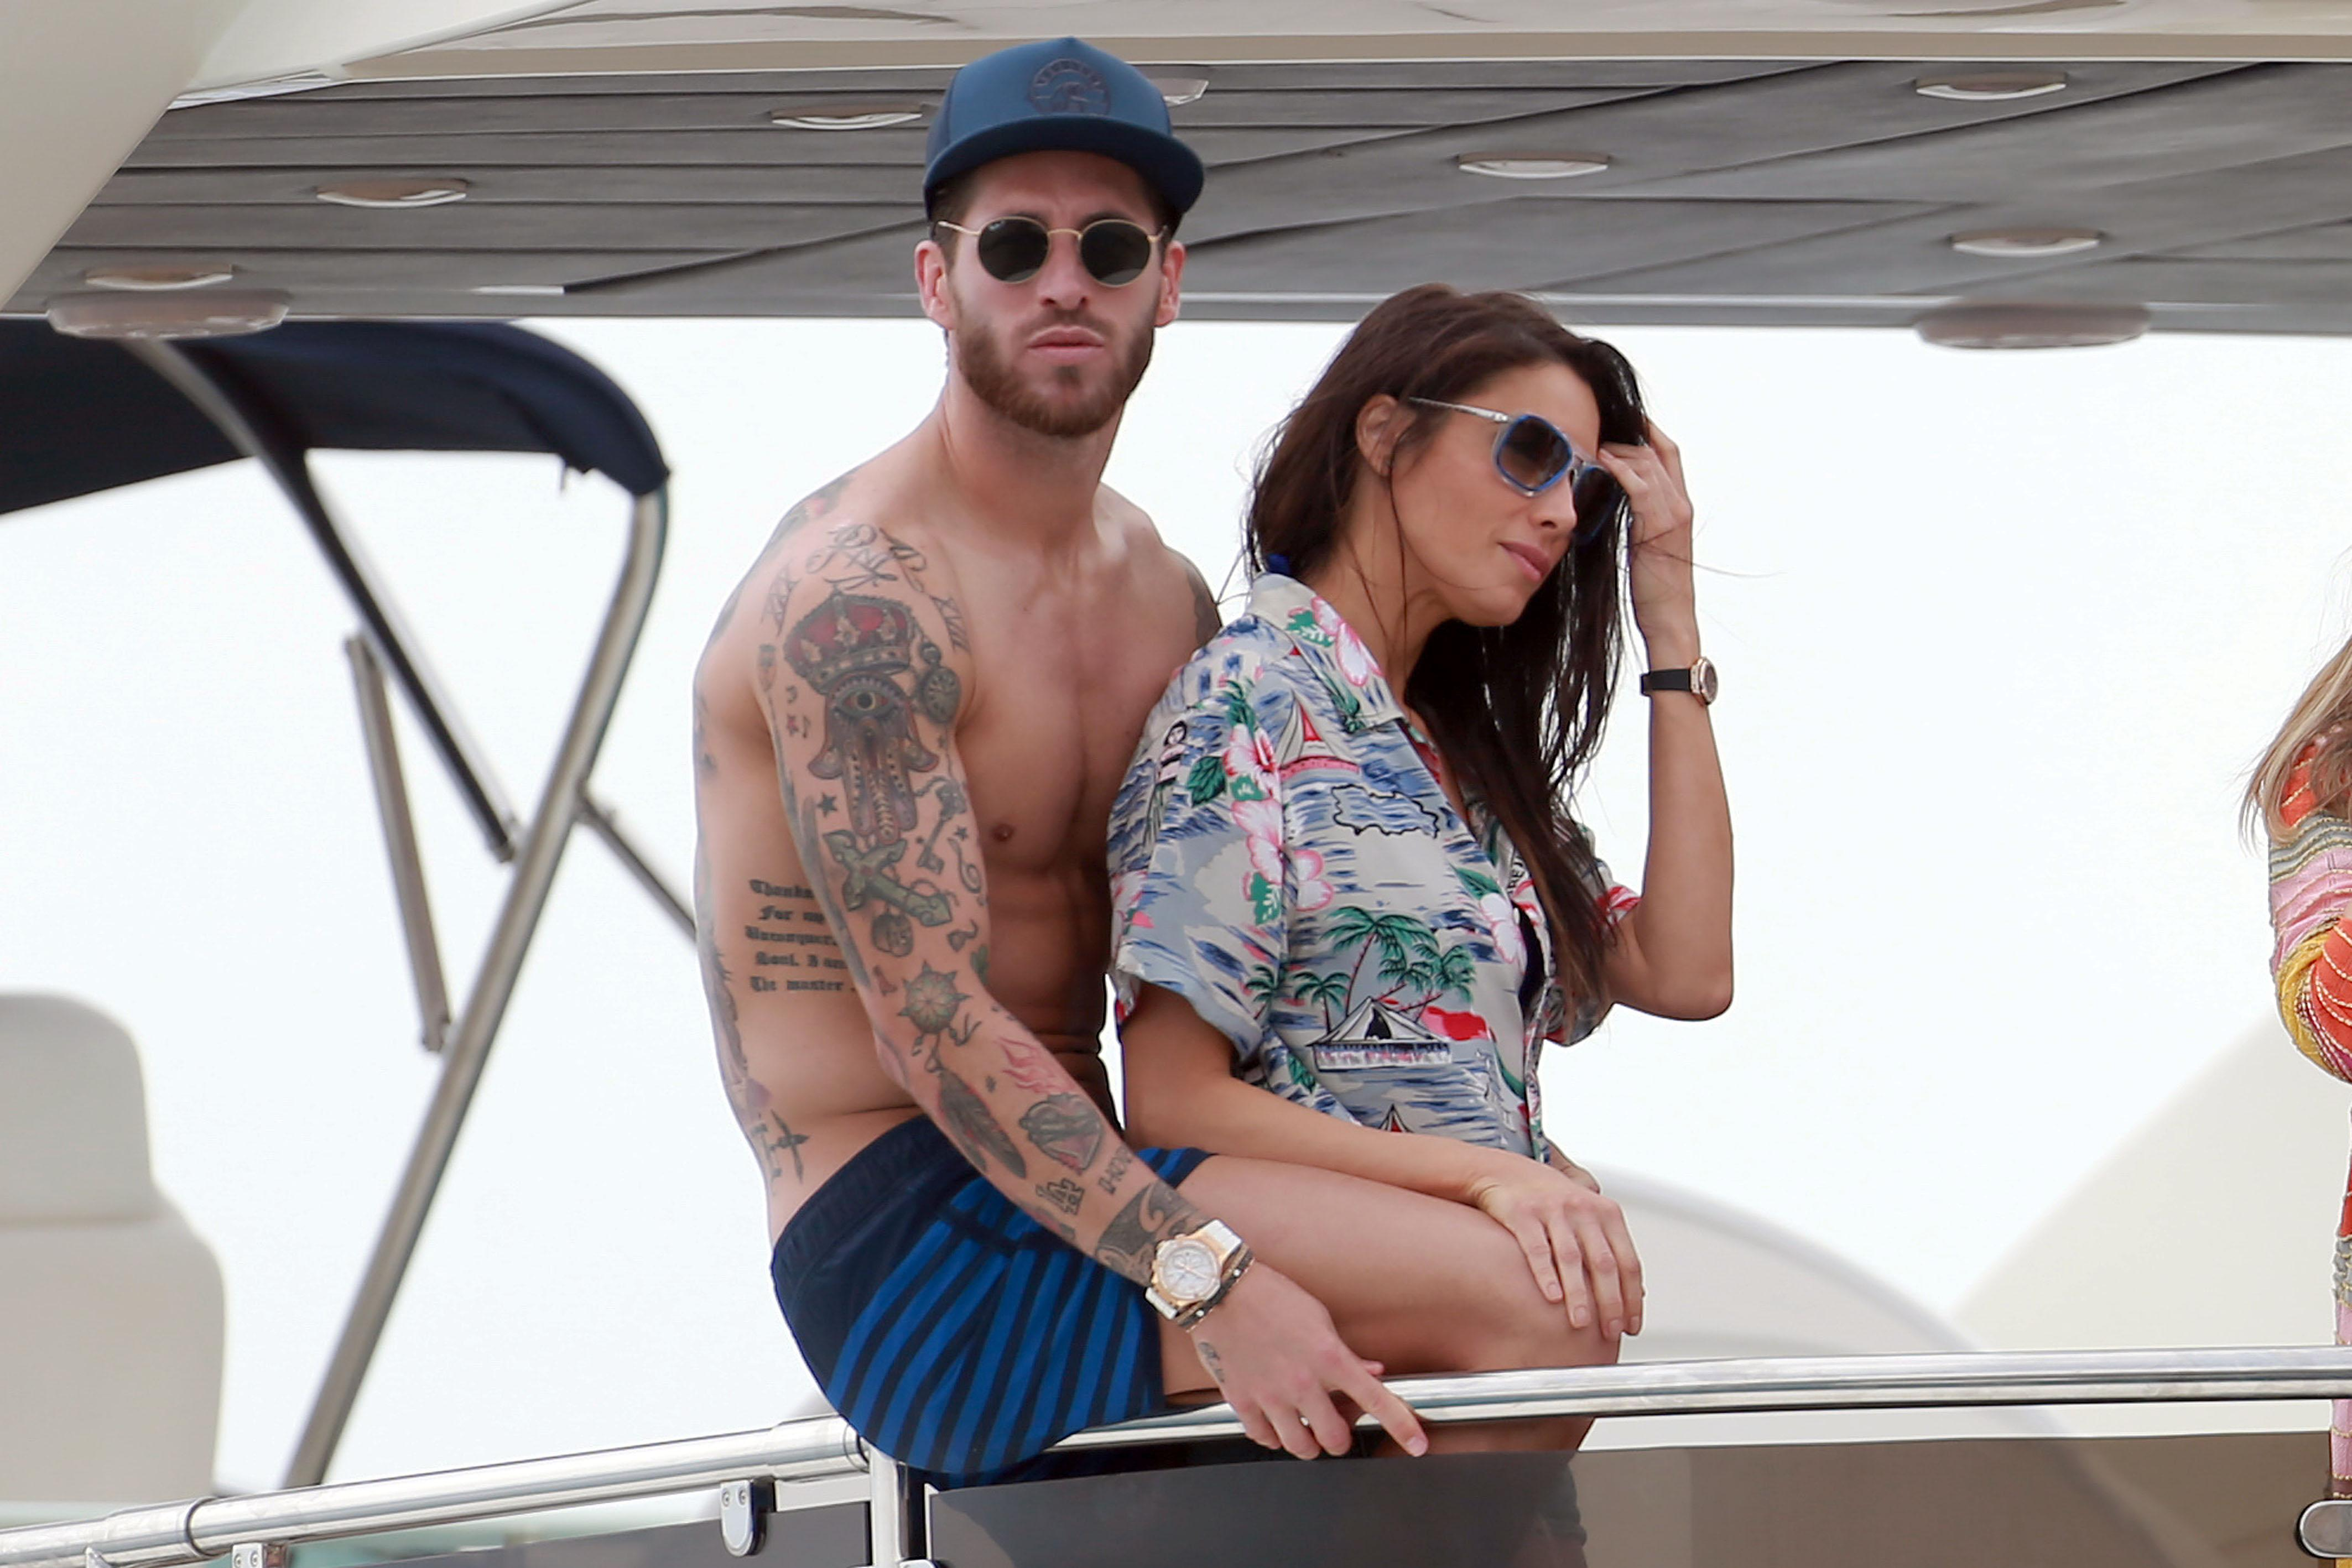 Sergio Ramos enjoyed some downtime on the Fairline Squadron 78 before the 2017 Champions League final